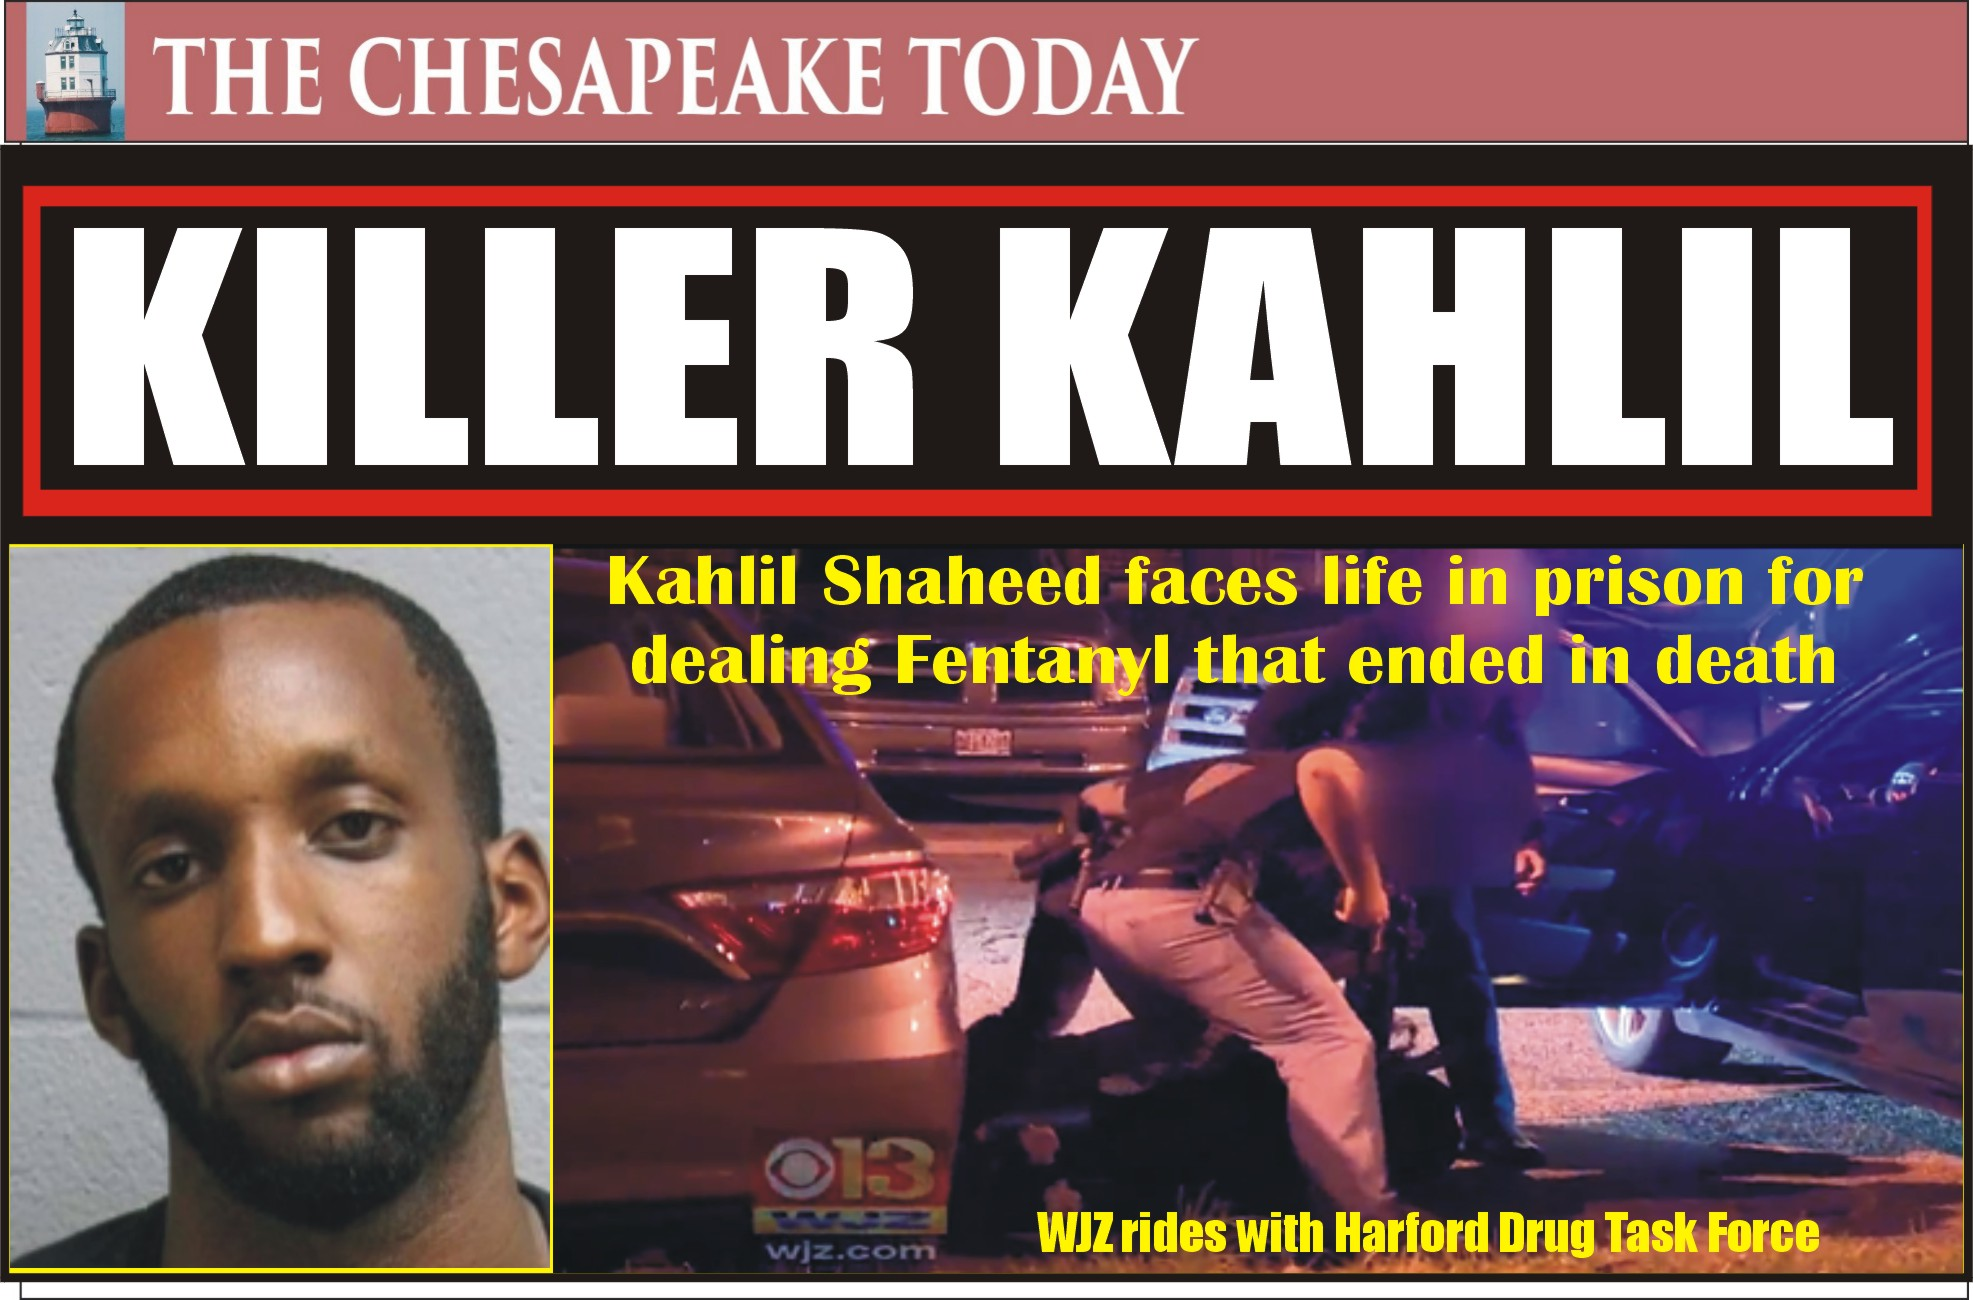 COURT NEWS: Harford Drug Task Force Successful in Placing Drug Dealer and Killer Khalil Shaheed on Glidepath to Life in a Federal Prison for Dealing Fatal Overdose